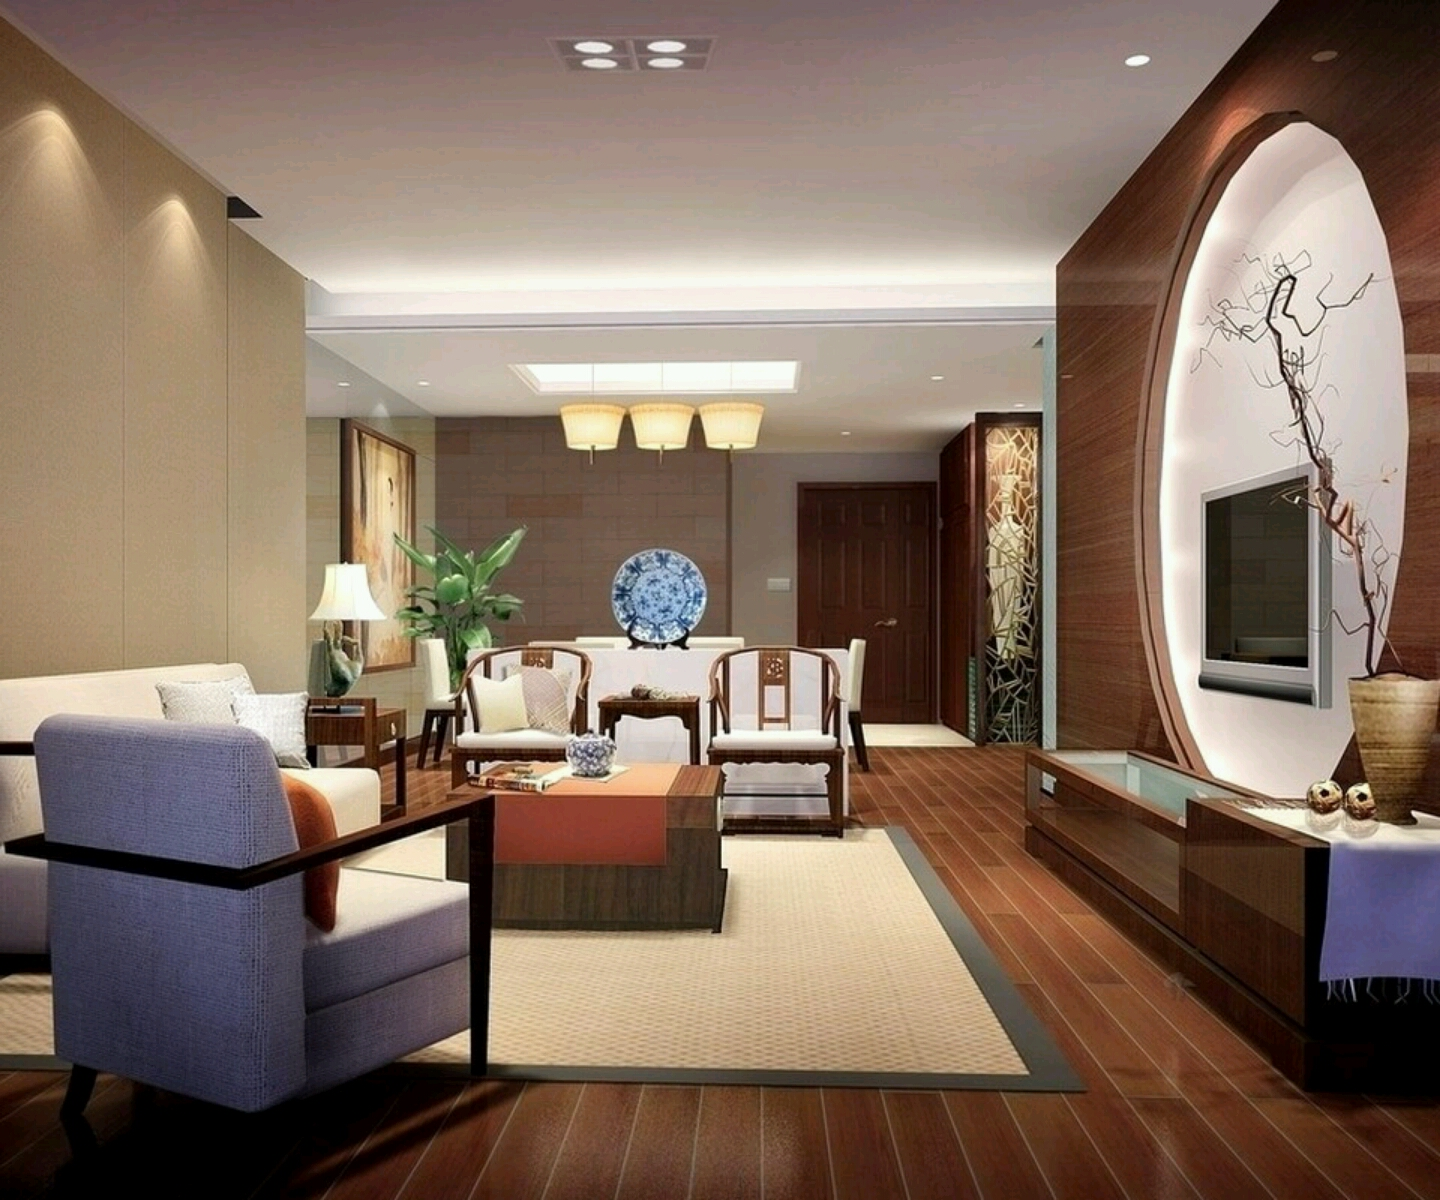 Living Room Renovation Ideas 28+ [ home interior design ideas for living room ] | living room